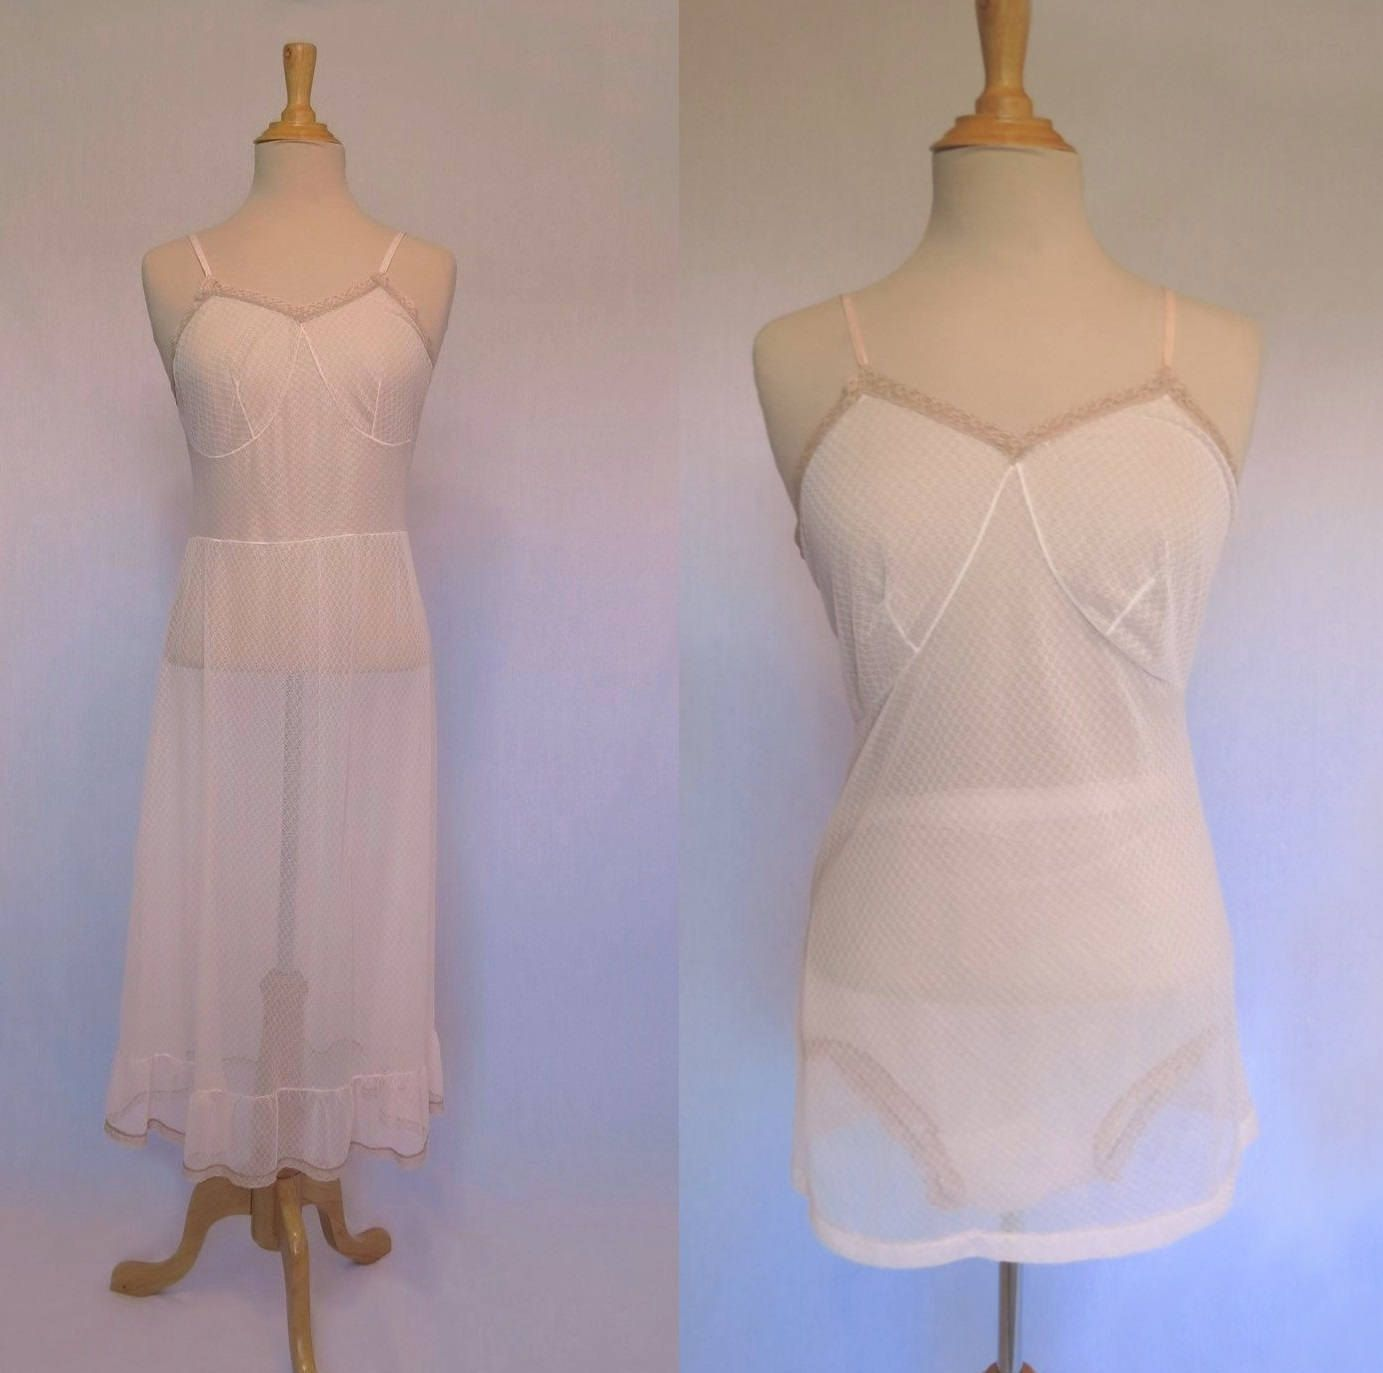 Lace dress 50s  Three Piece Lingerie Set  s by LouisaAmeliaJane on Etsy  VFG